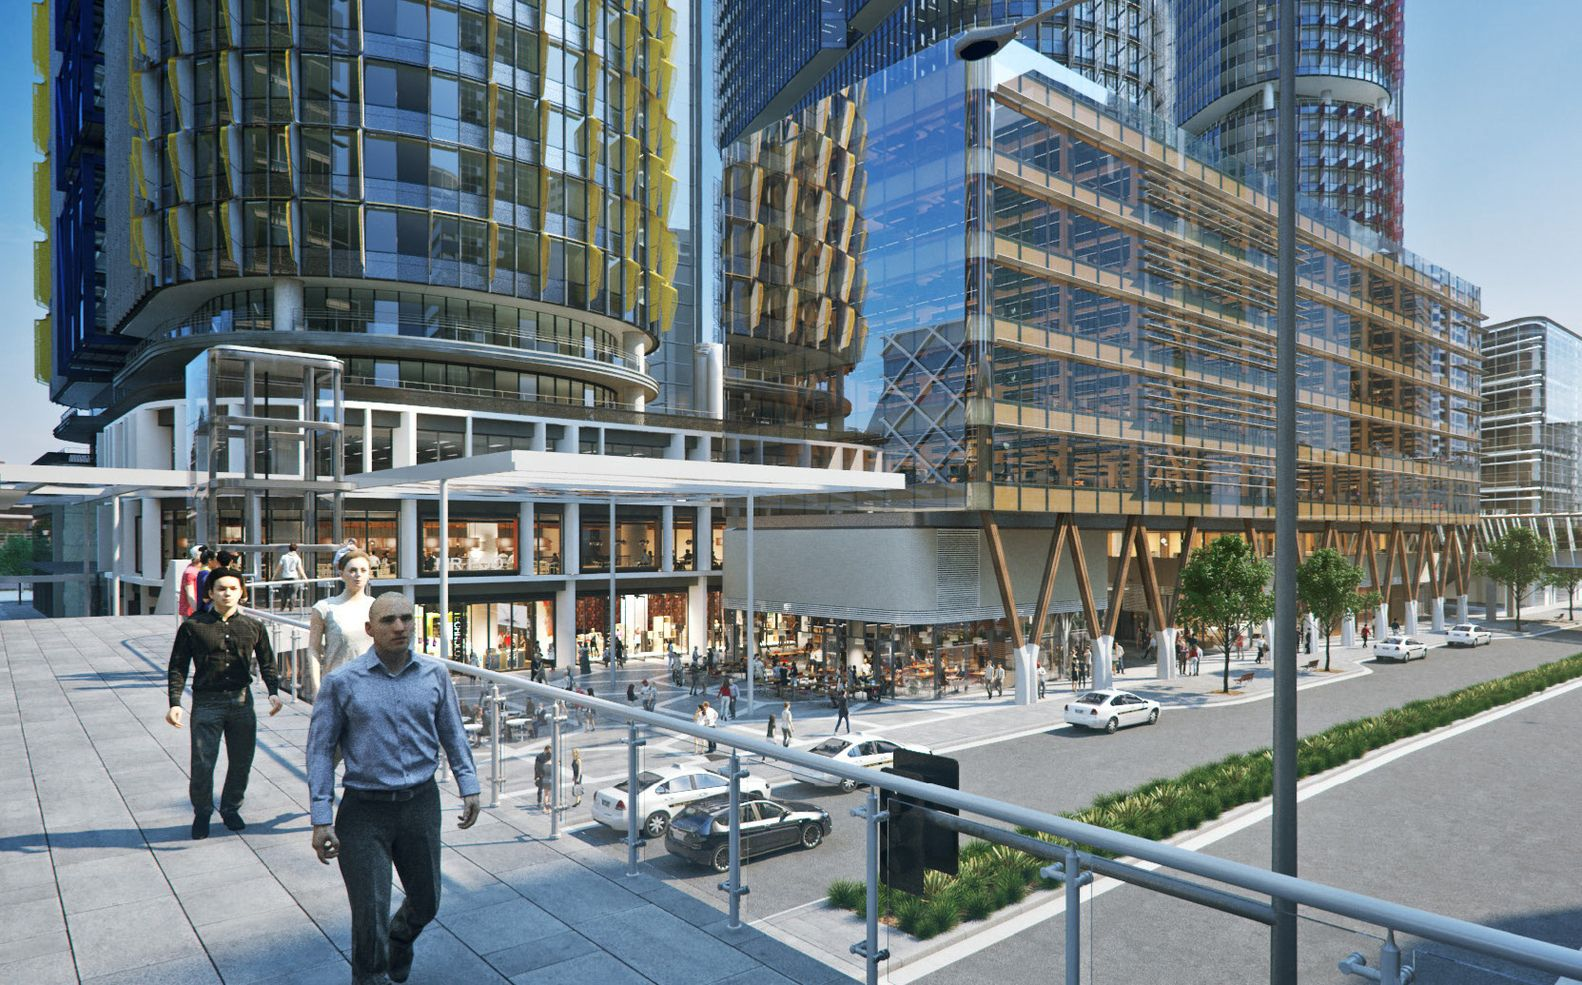 Tzannes Releases Designs for Australia's Largest Commercial Timber Building,View from Hickson Road pedestrian bridge. Image Courtesy of Tzannes